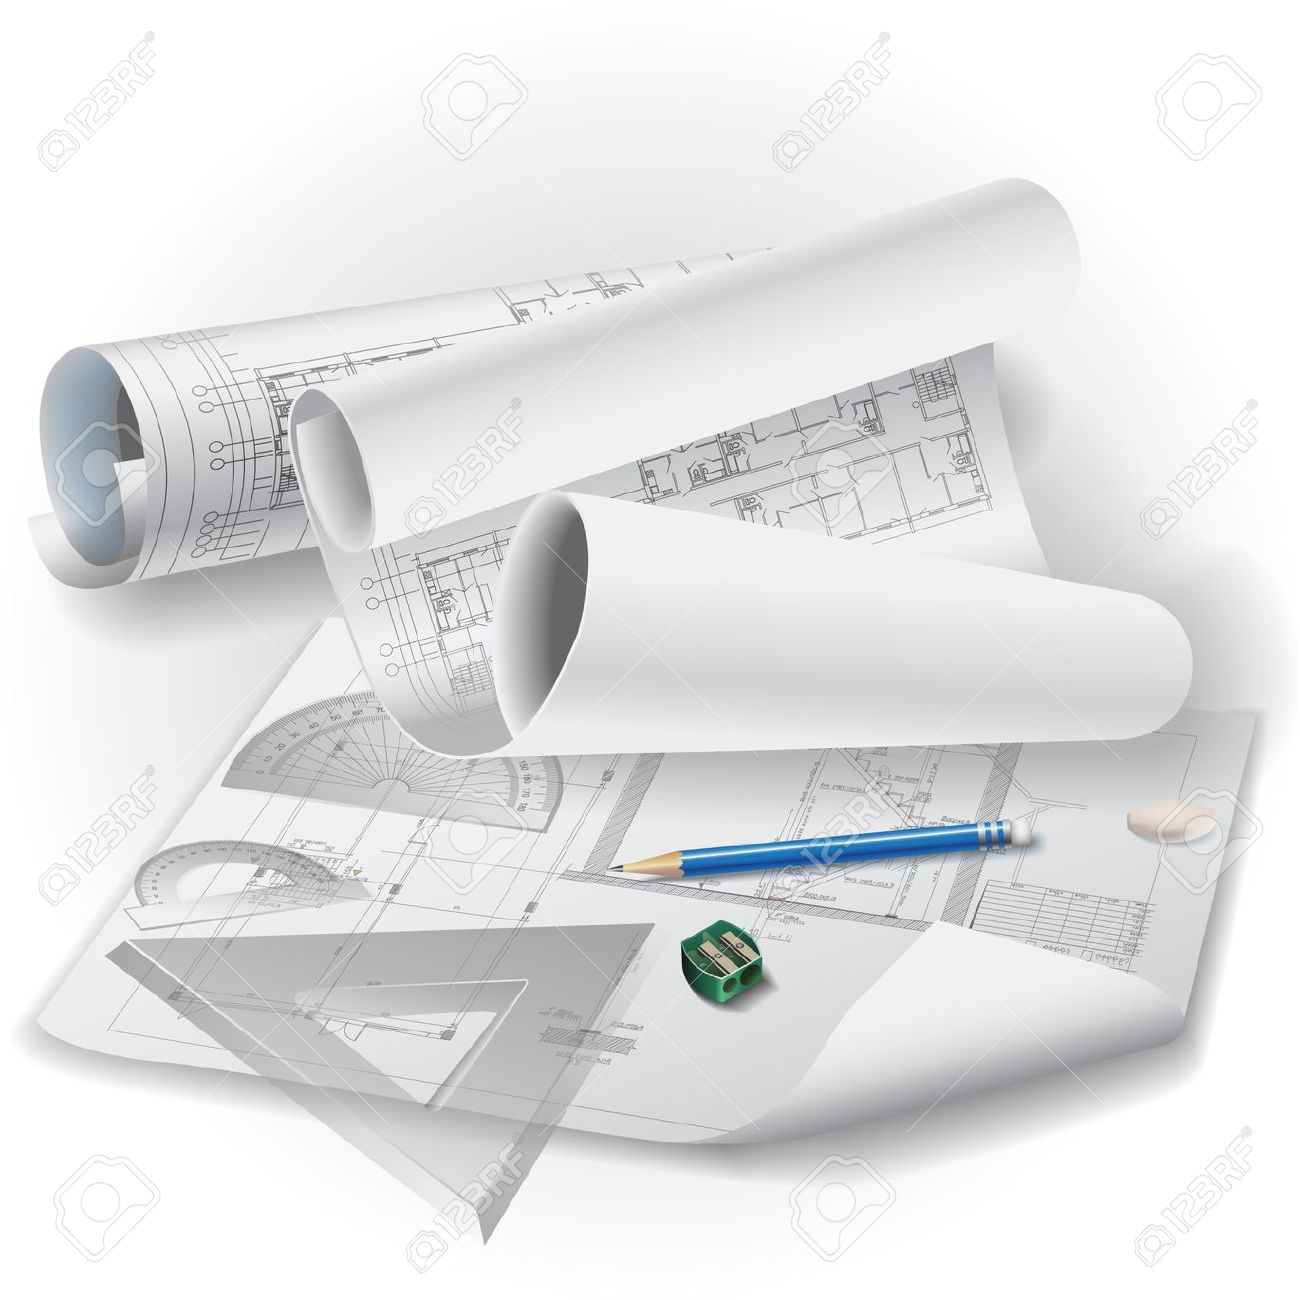 Architectural Background With Drawing Tools And Rolls Of Drawings.